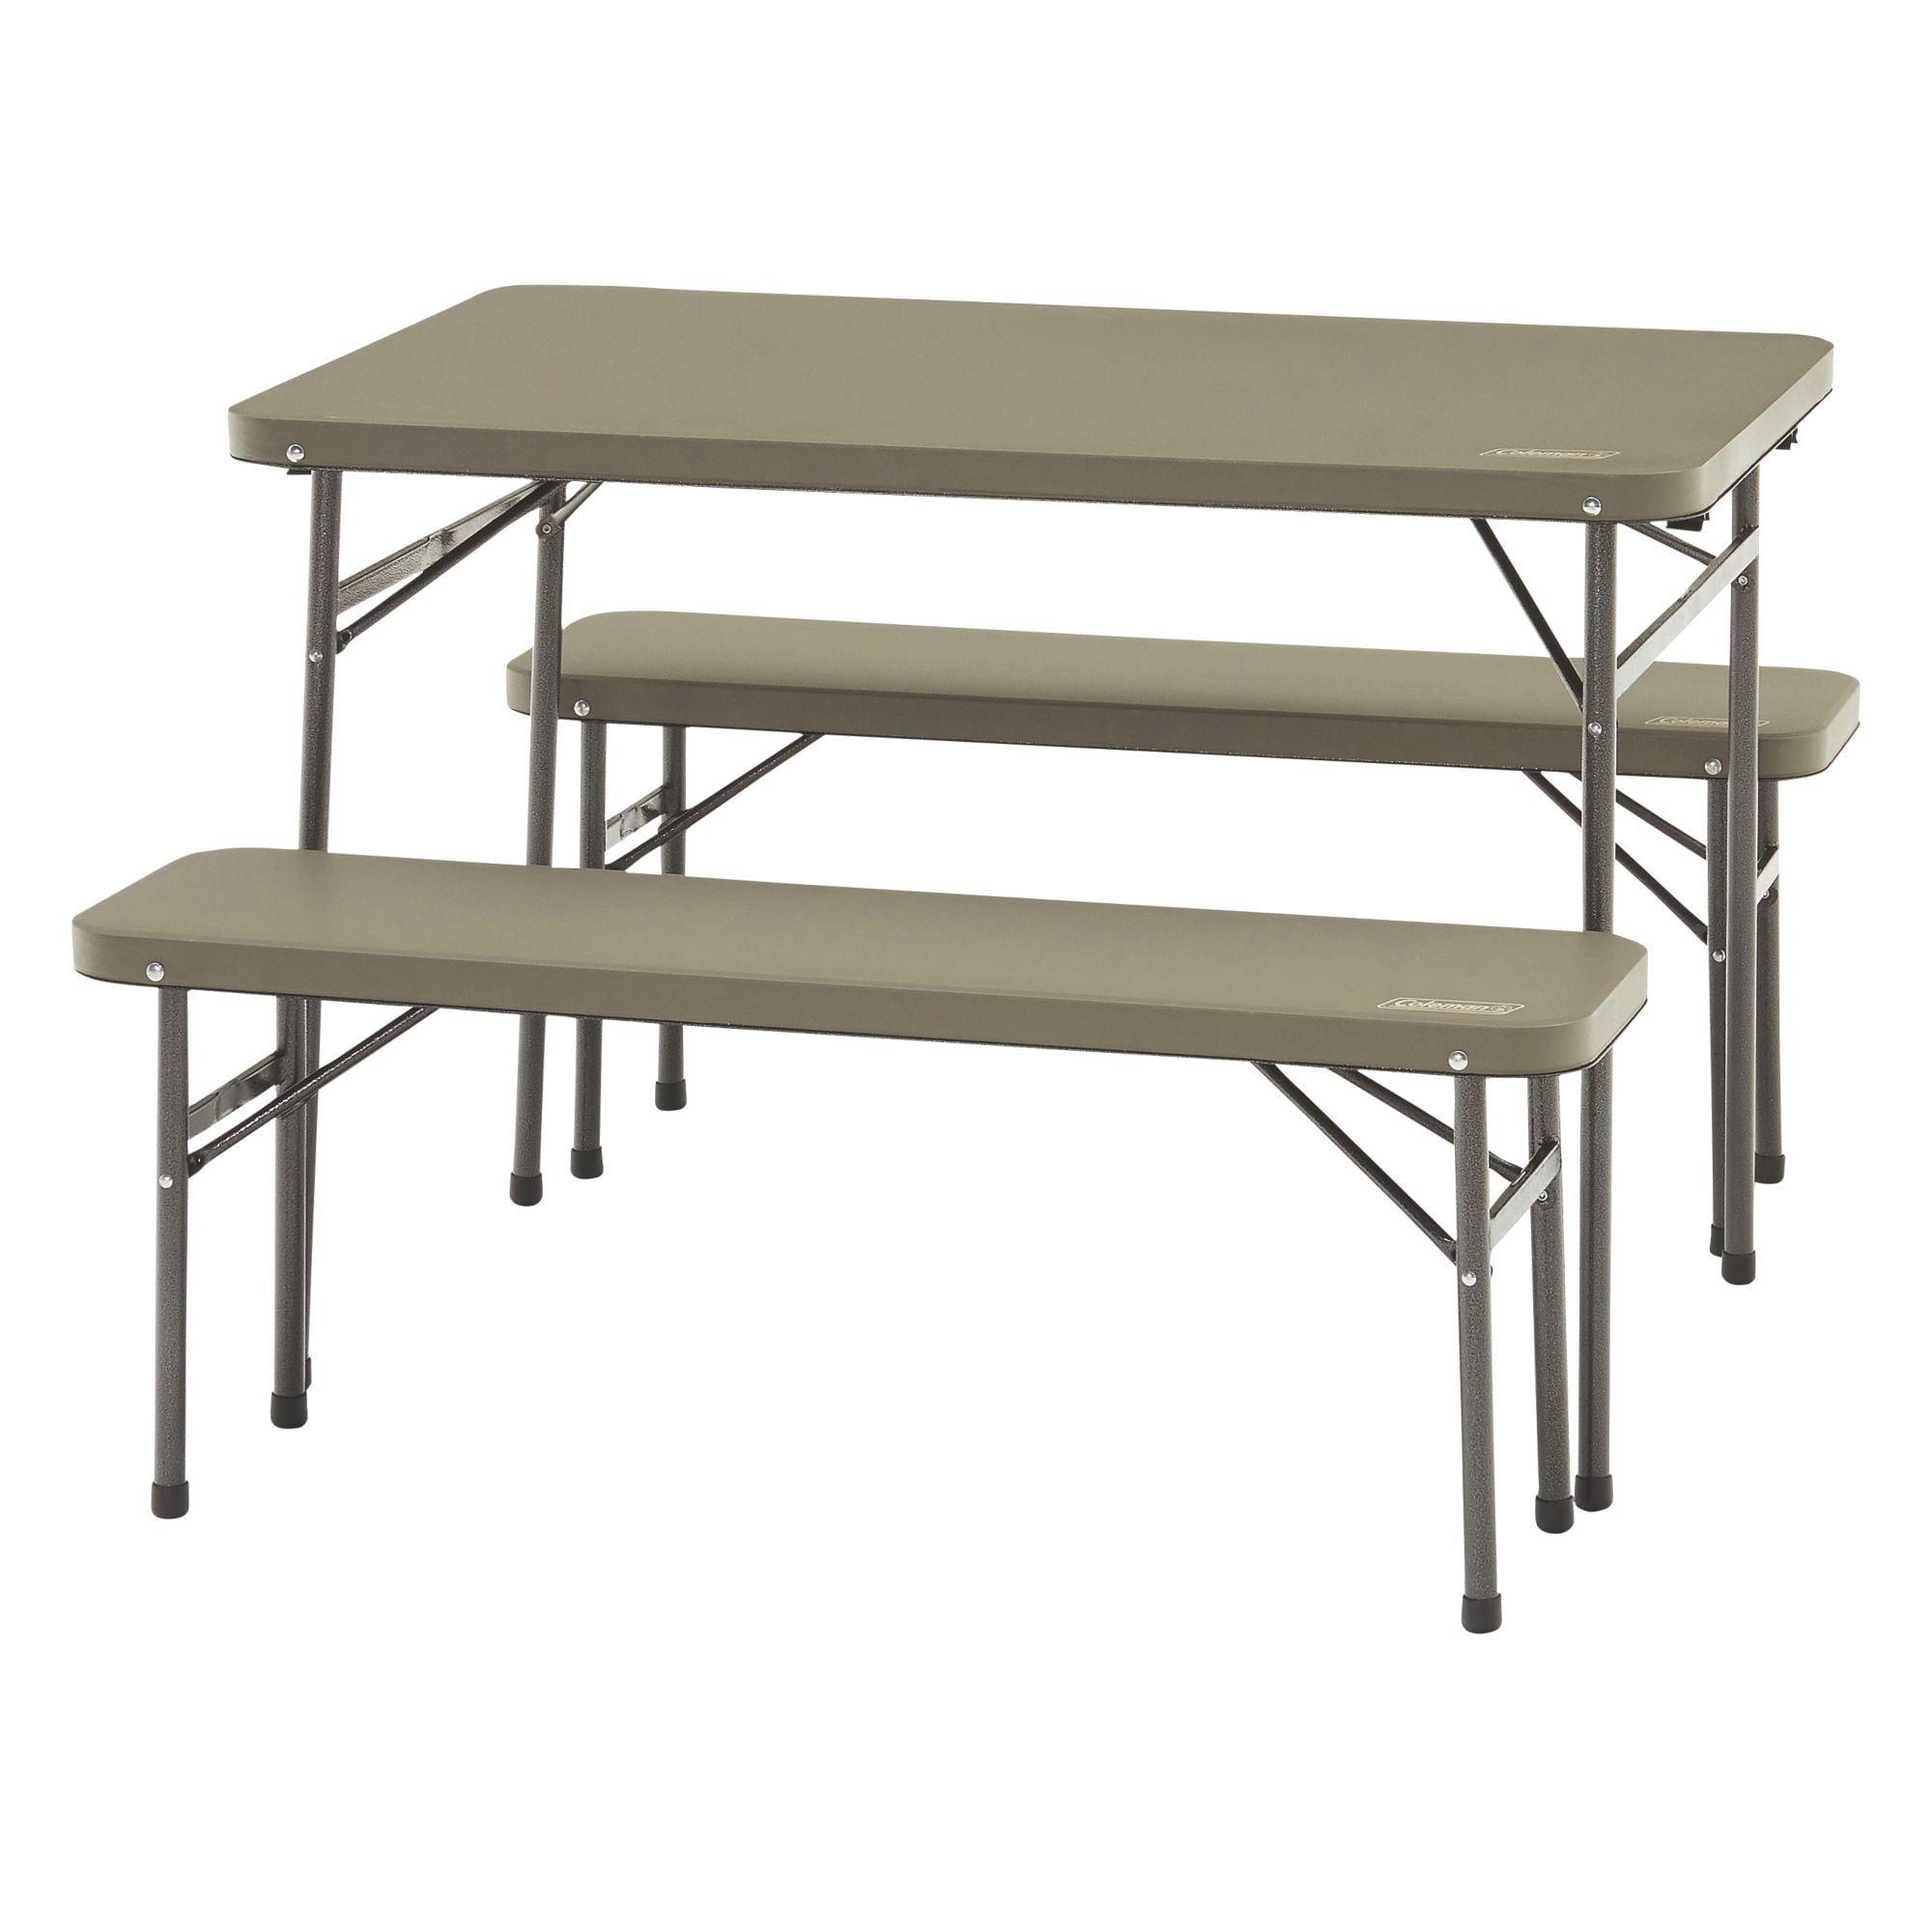 PACK-AWAY TABLE AND BENCH- 3 PIECE SET